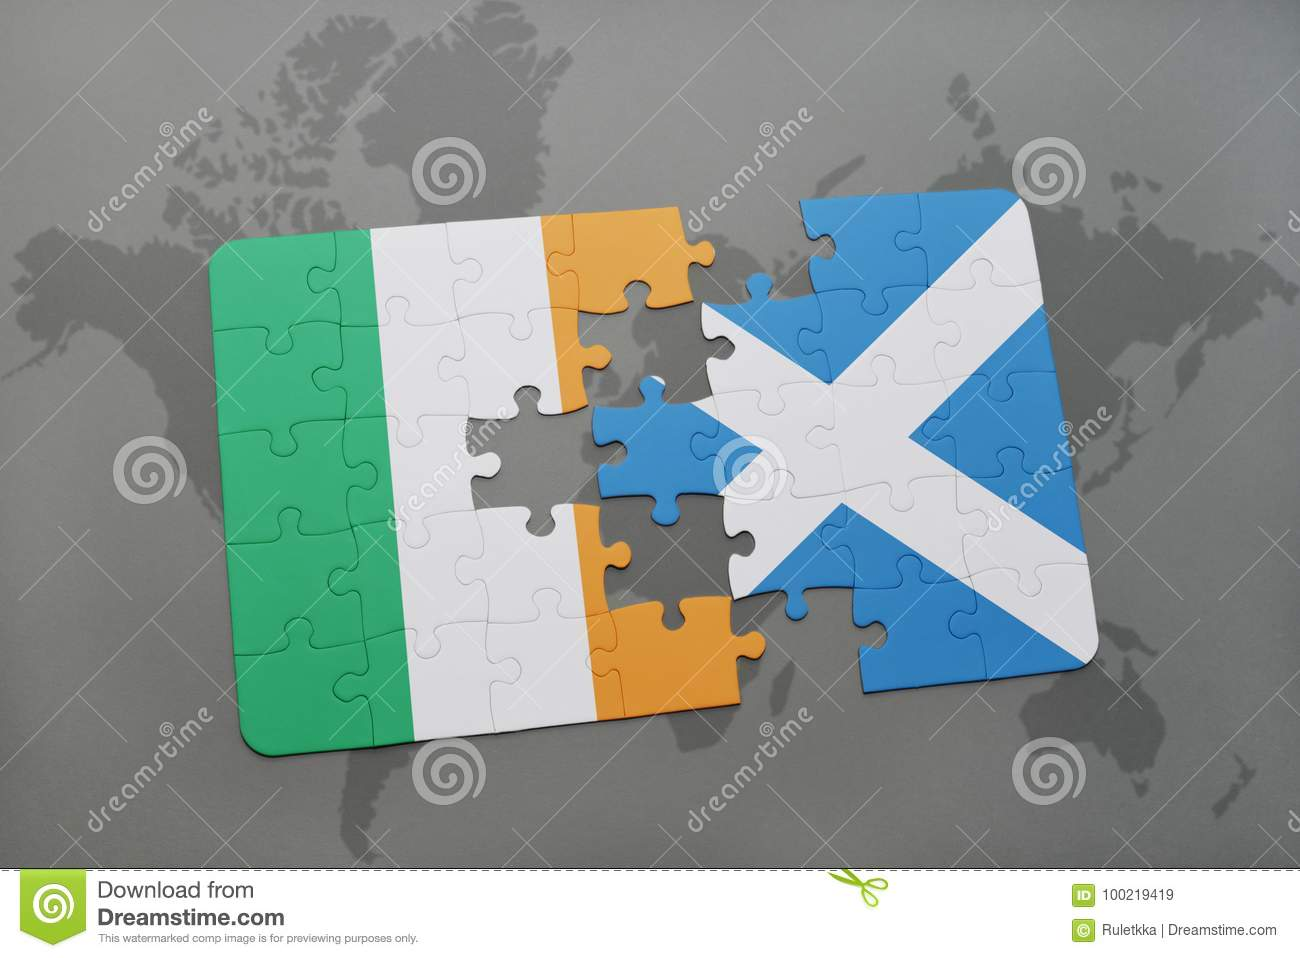 Puzzle With The National Flag Of Ireland And Scotland On A World Map